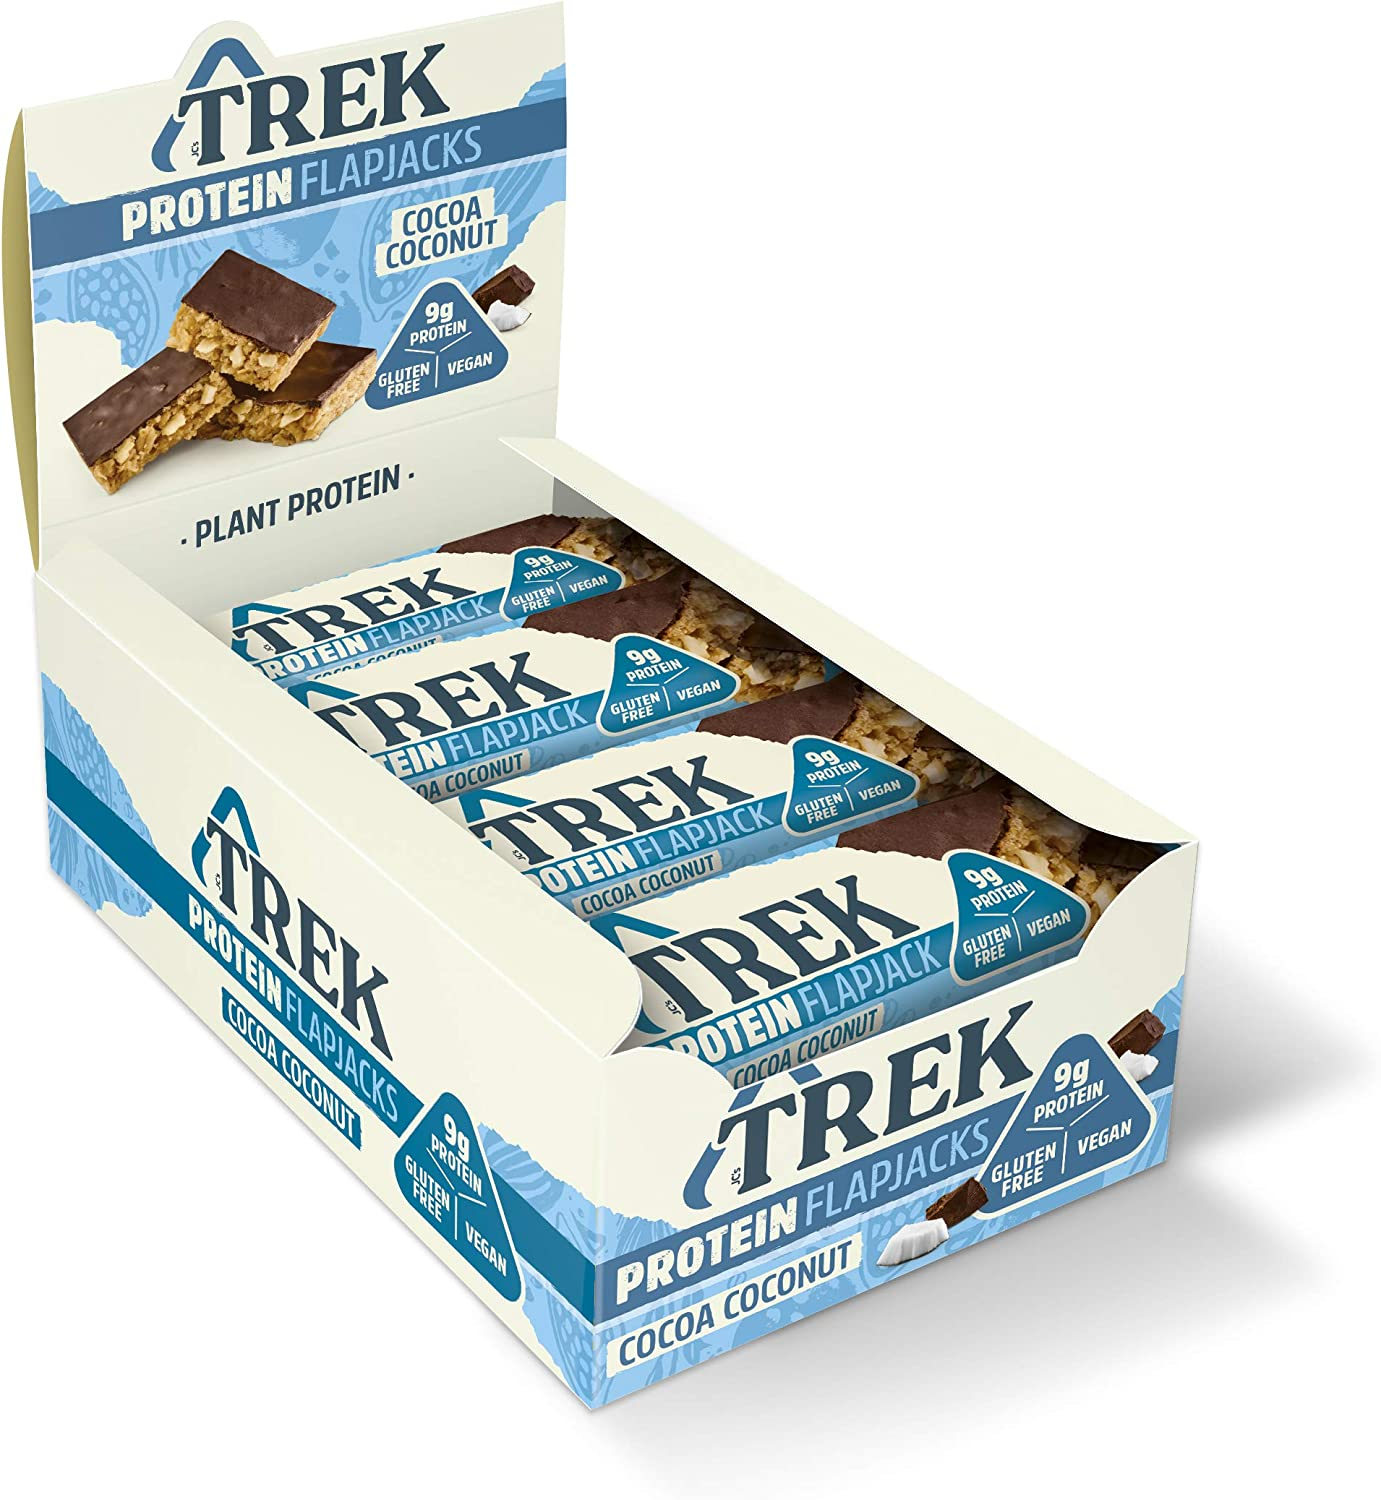 TREK High Protein Flapjacks 50g (Pack of 16 Bars)